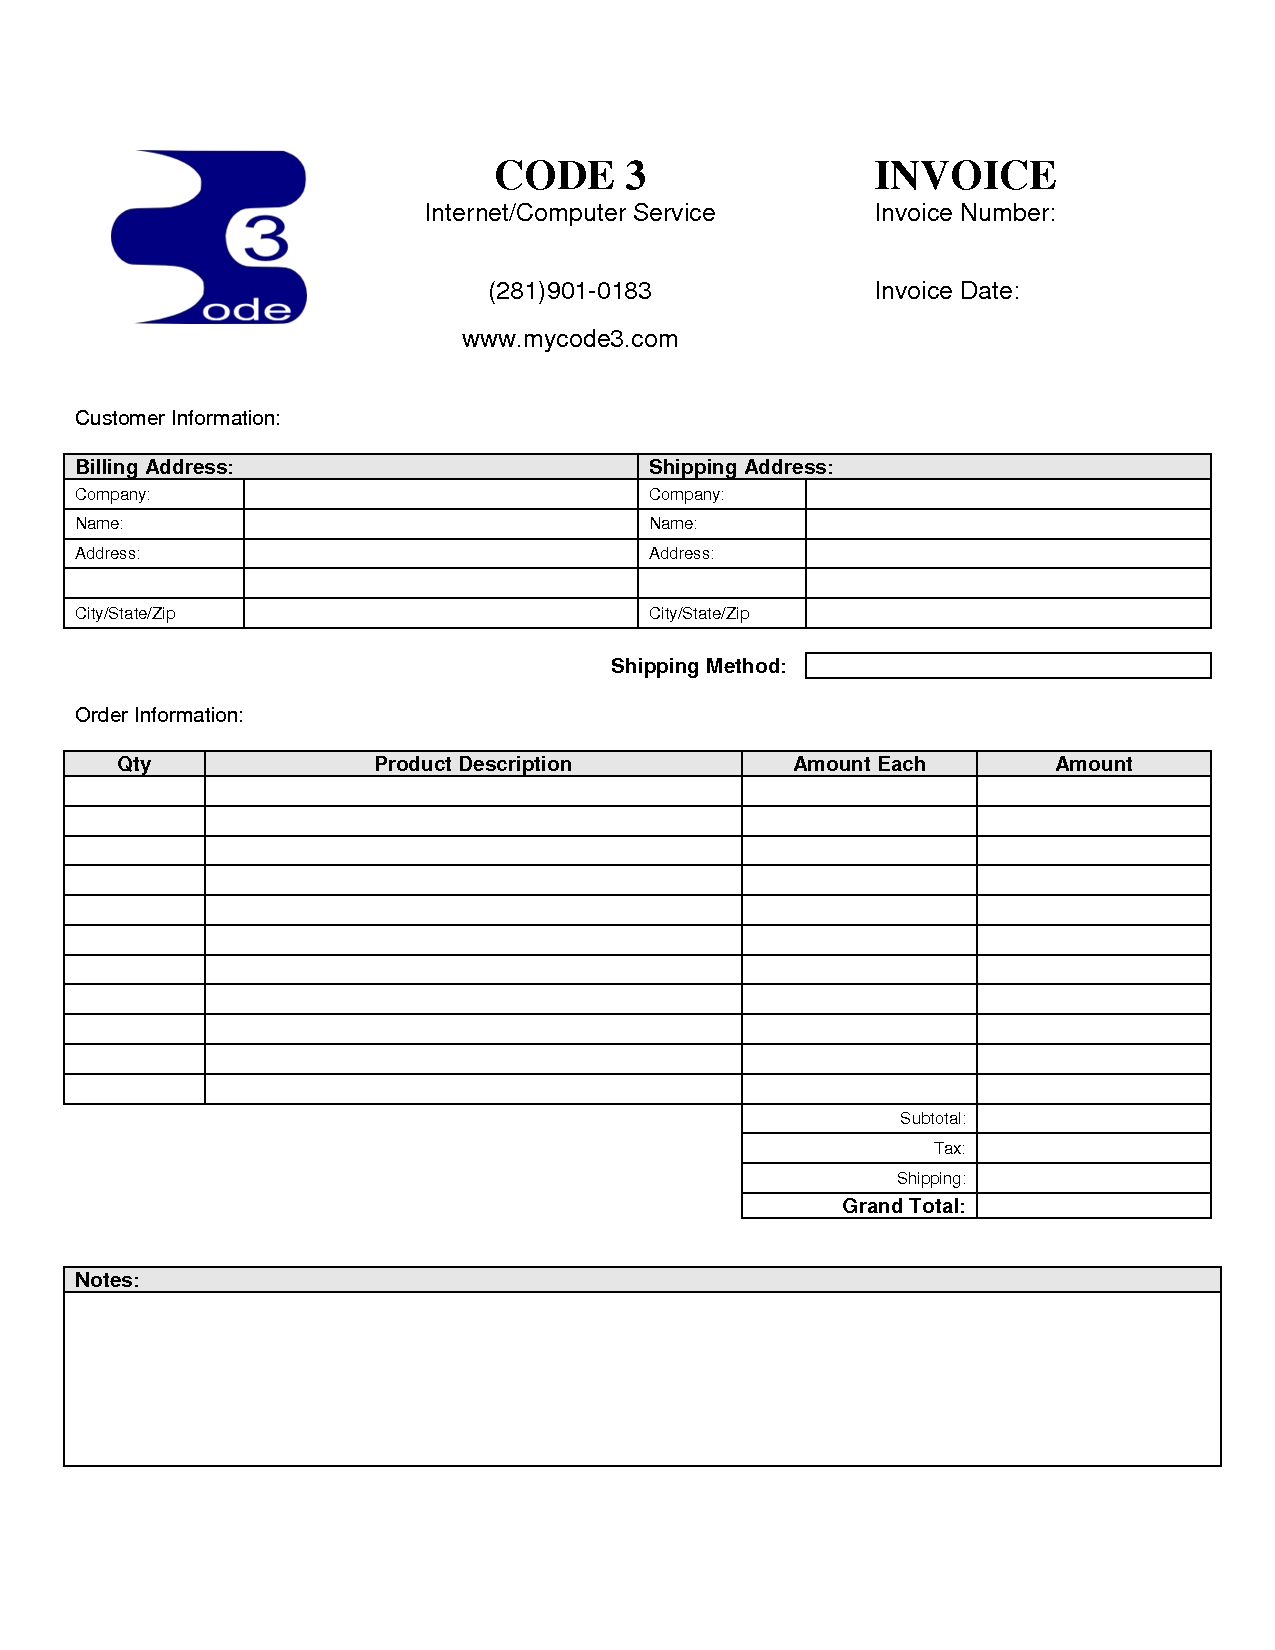 pin computer service invoice template pictures on pinterest computer service invoice template